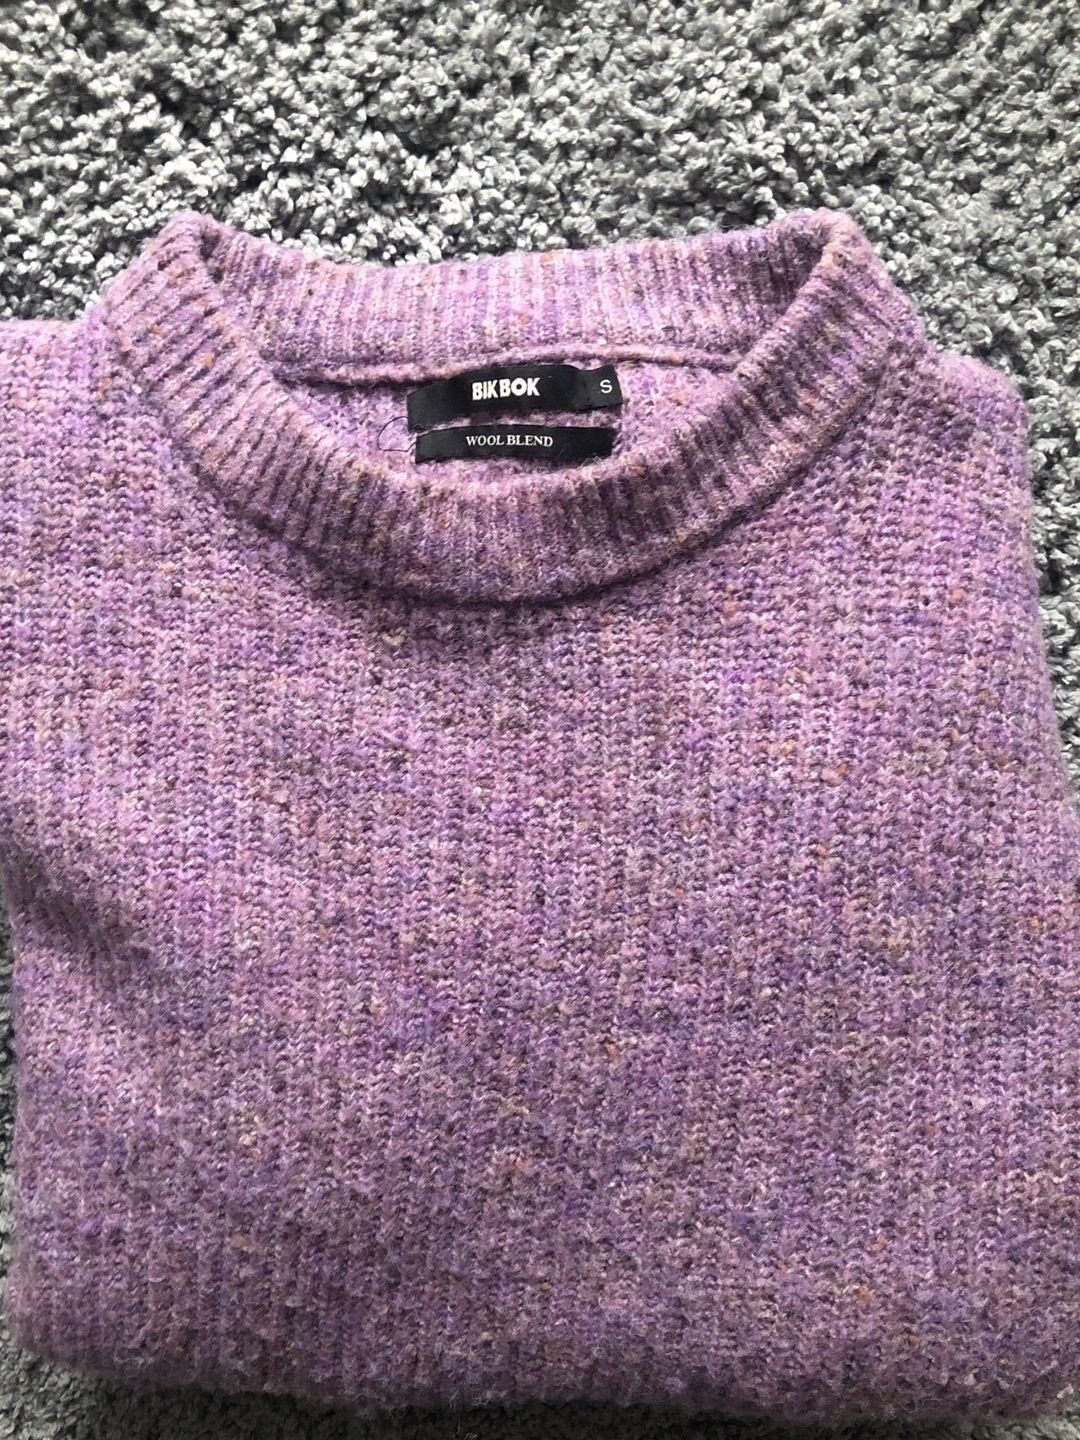 Women's jumpers & cardigans - BIK BOK photo 2